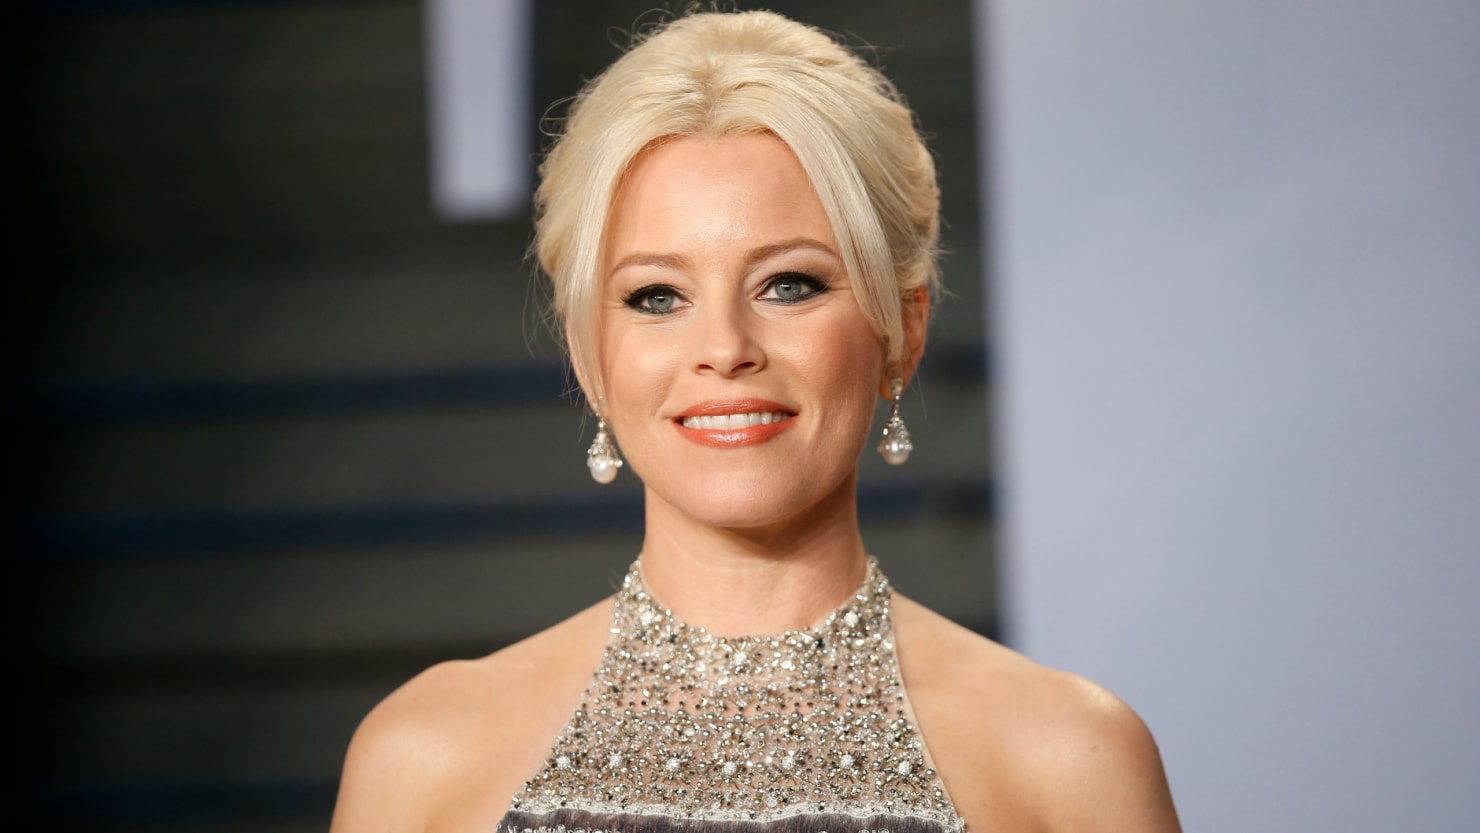 Snapchat Elizabeth Banks nudes (22 photo), Tits, Cleavage, Twitter, underwear 2020